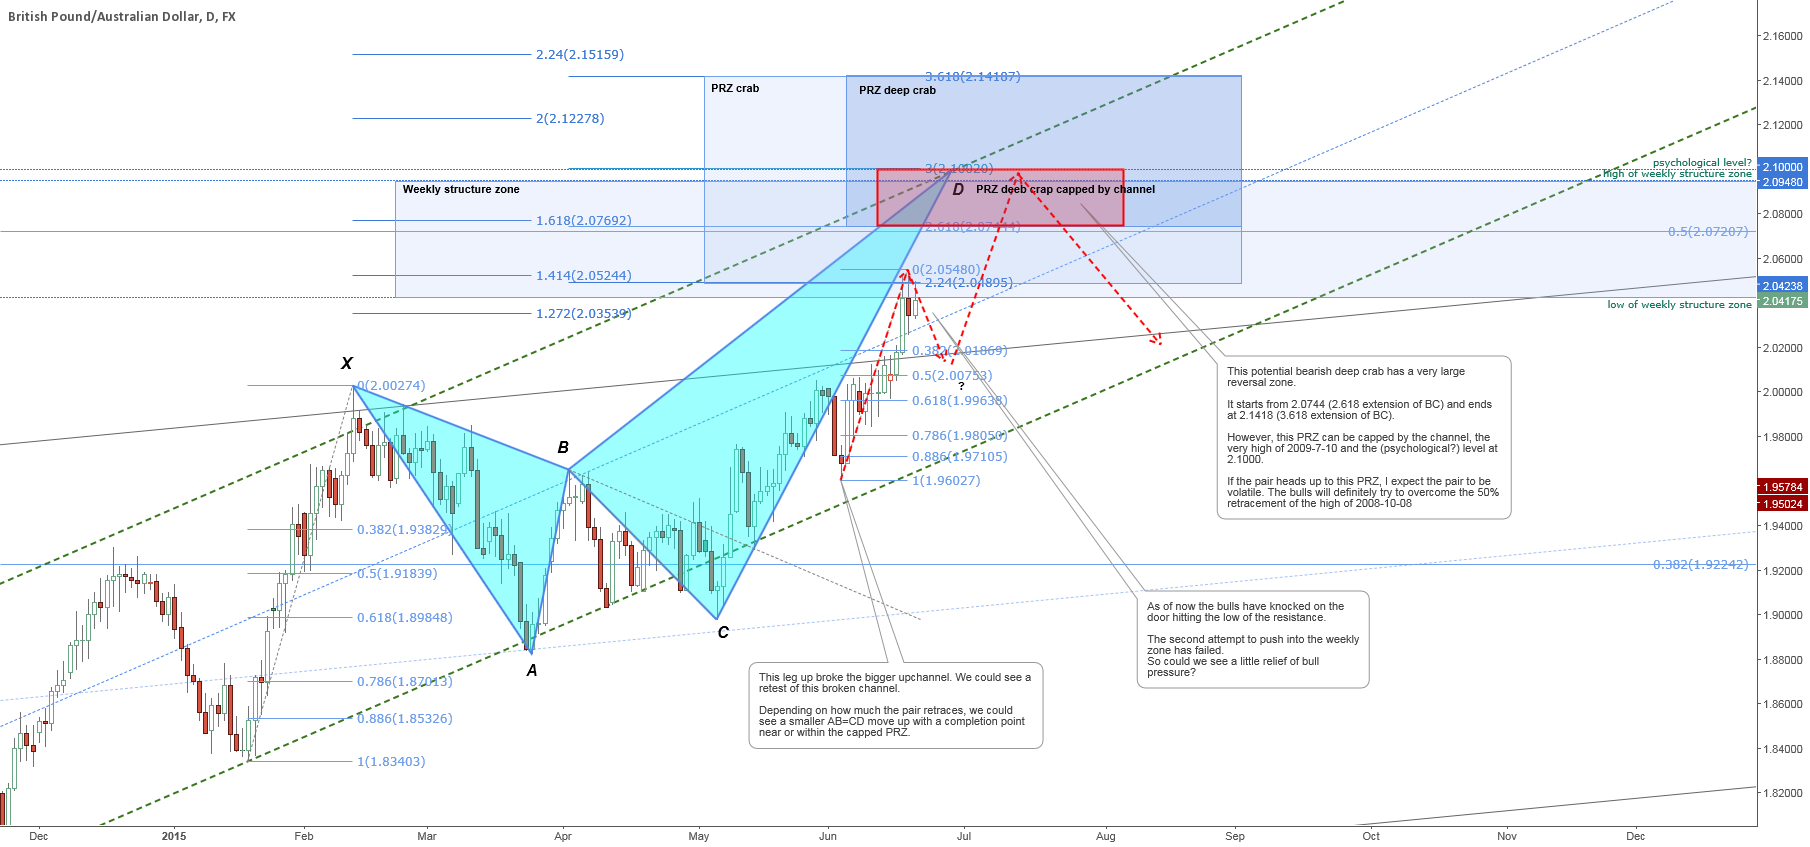 A bearish deep crab with a PRZ starting from 2.0744